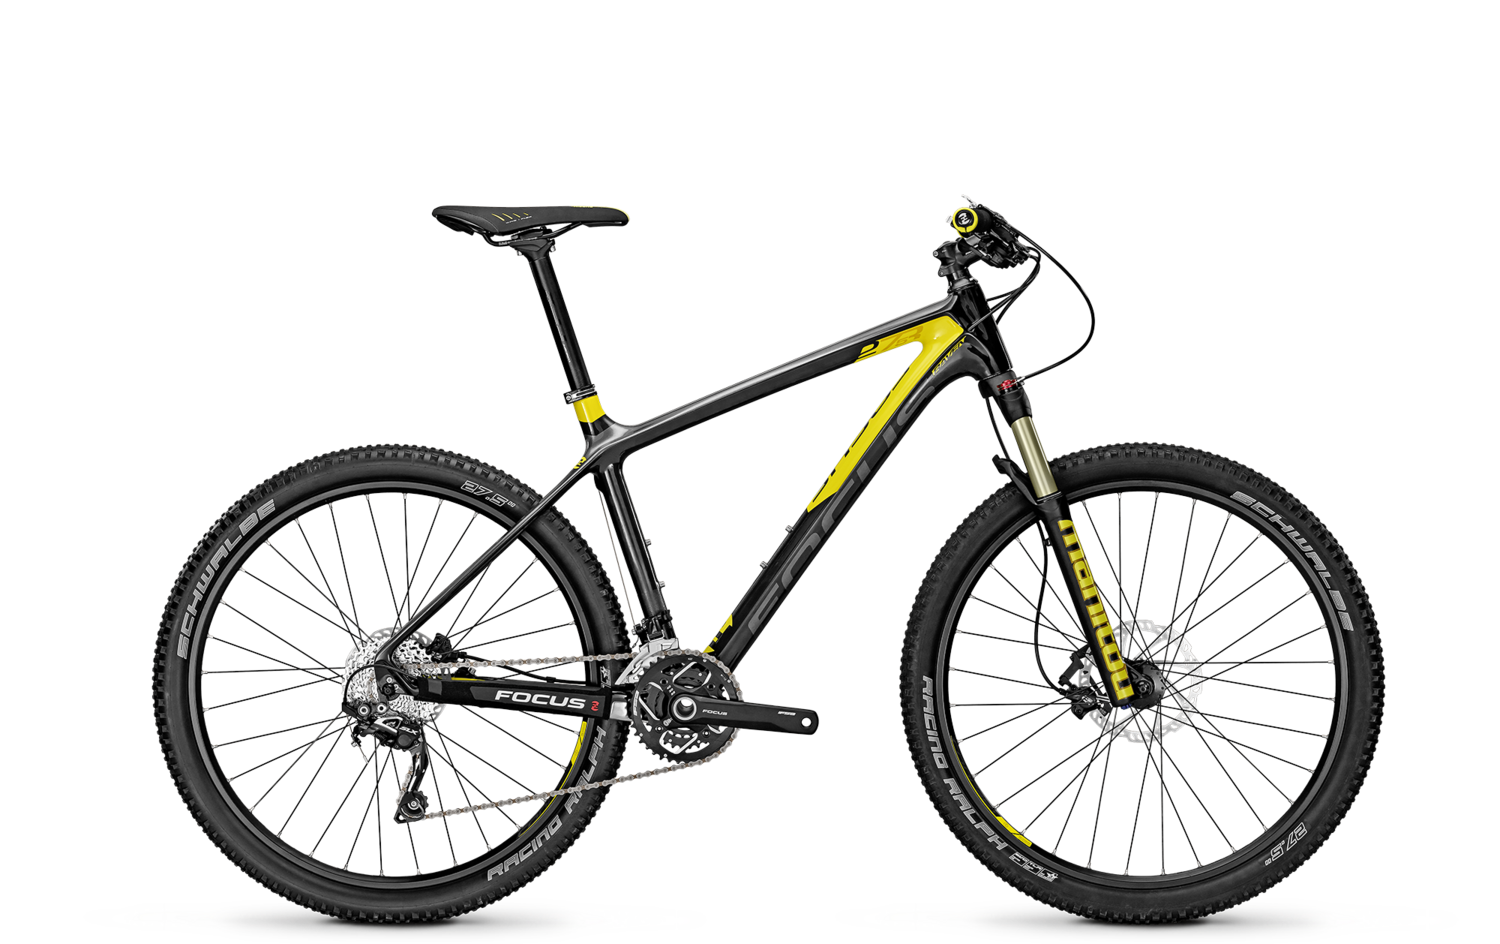 Bike Review Focus Bikes Raven 27r 4 2014 Http Roa Rs 1c5nowi